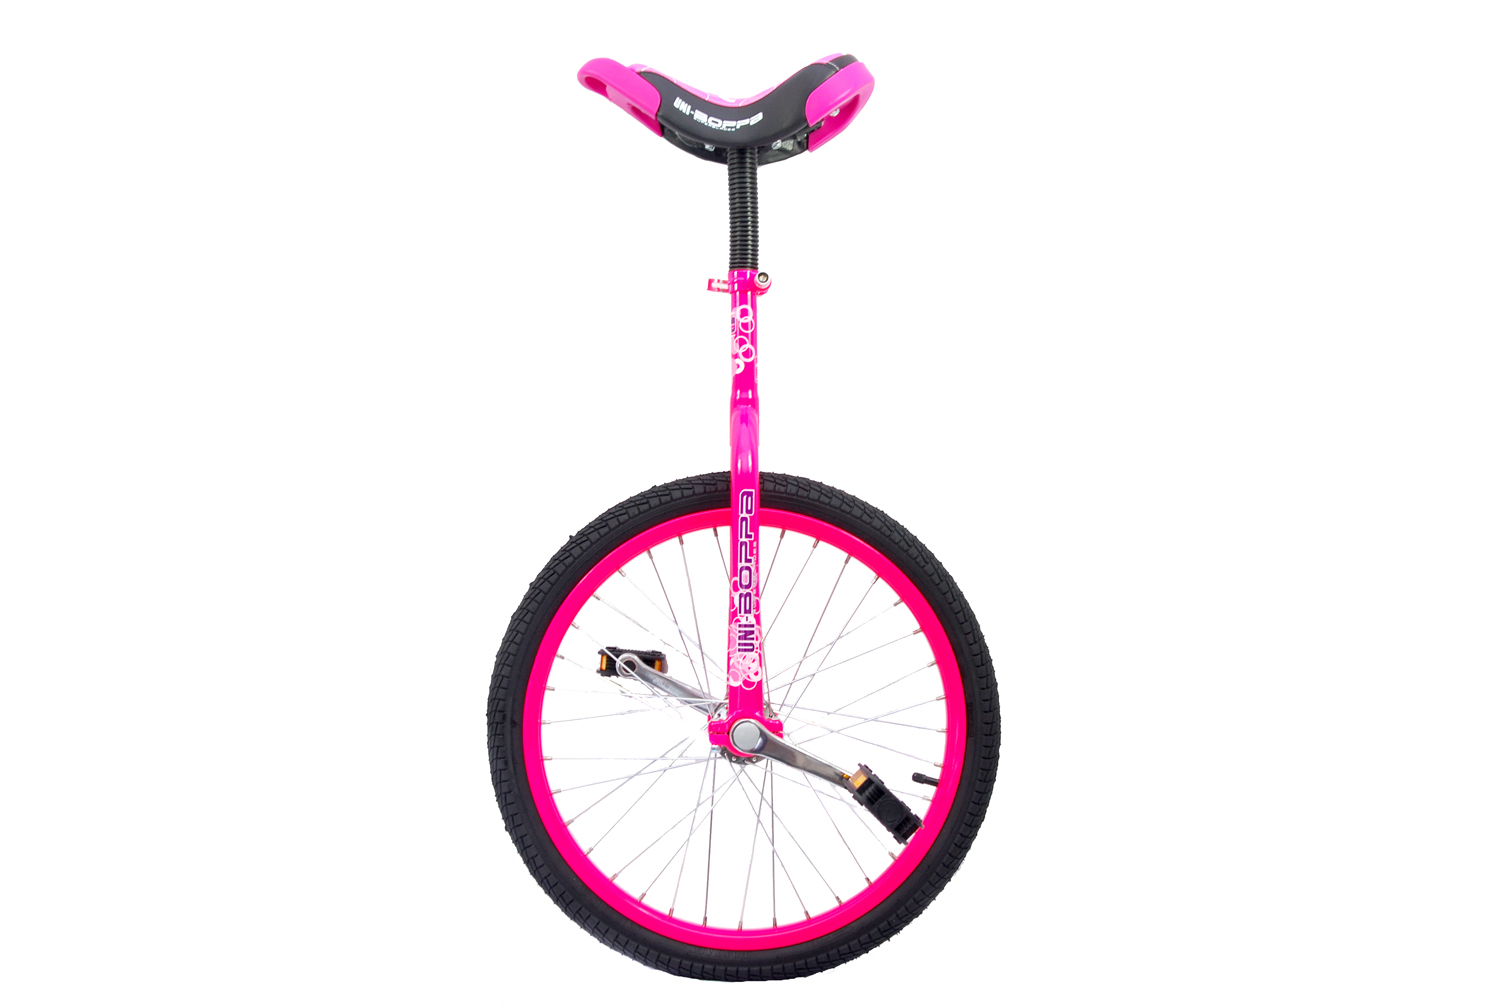 Picture Of A Unicycle - ClipArt Best